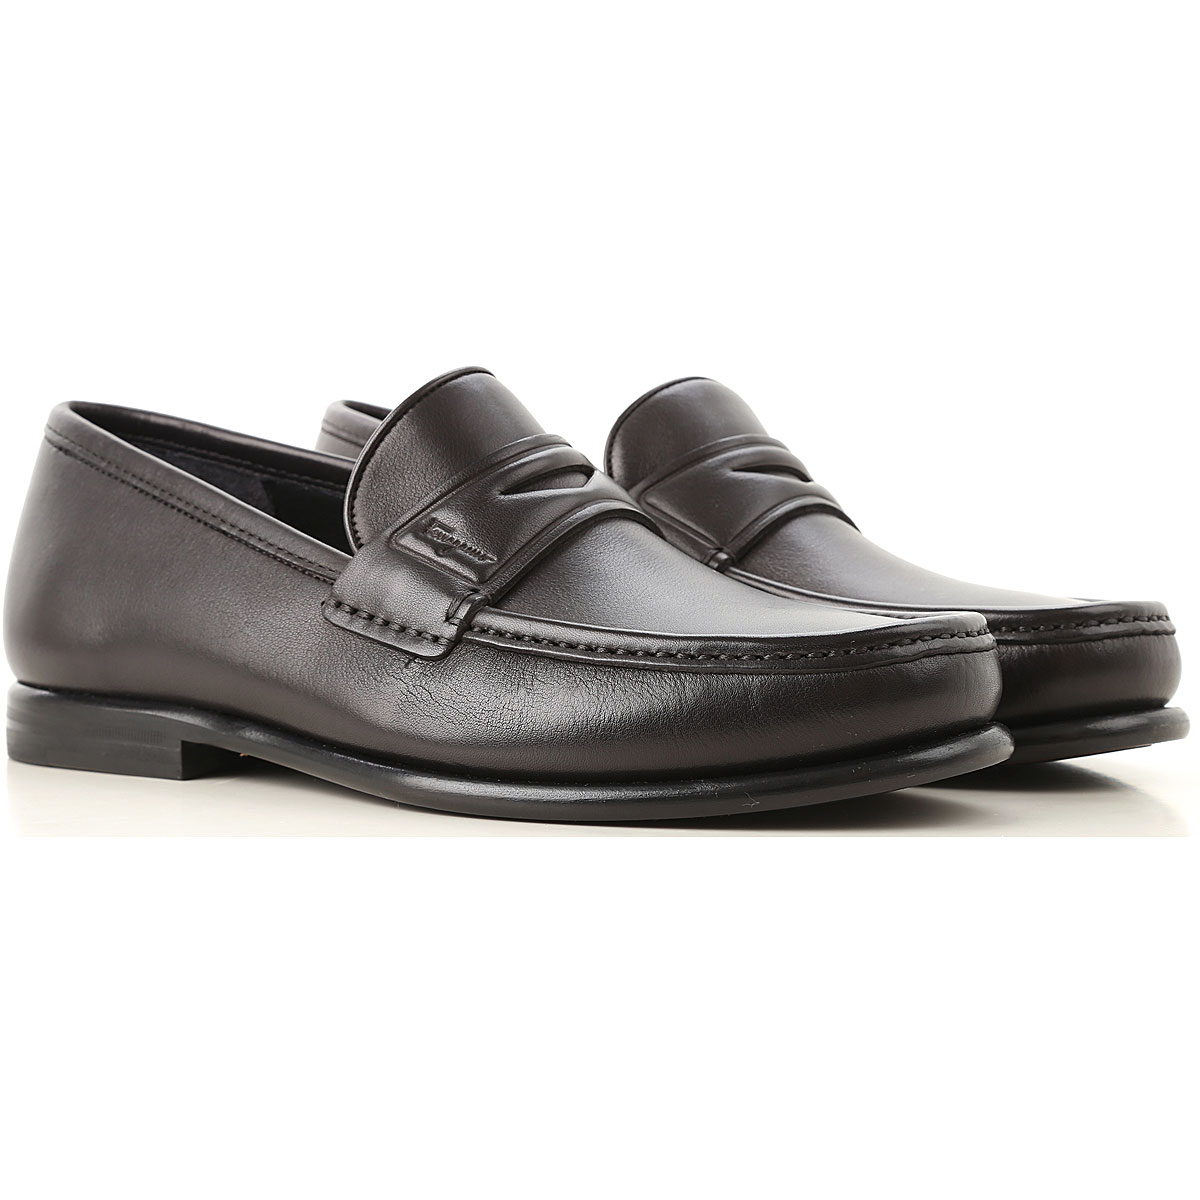 Salvatore Ferragamo Loafers for Men On Sale in Outlet, Black, Leather, 2019, 6 7